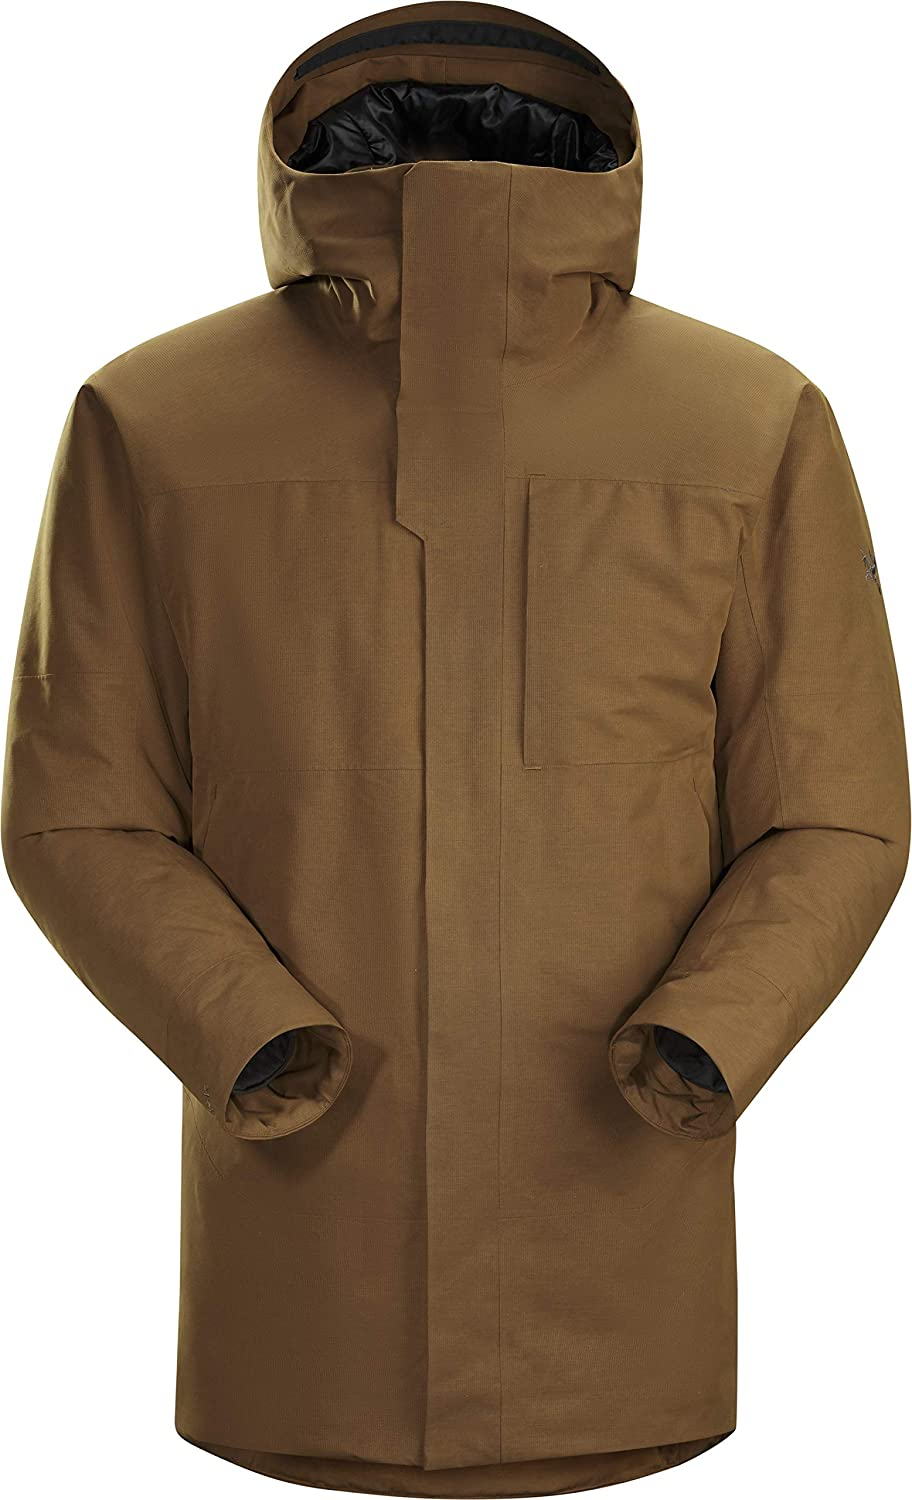 776a30e36da Arc'teryx Therme Parka Men's